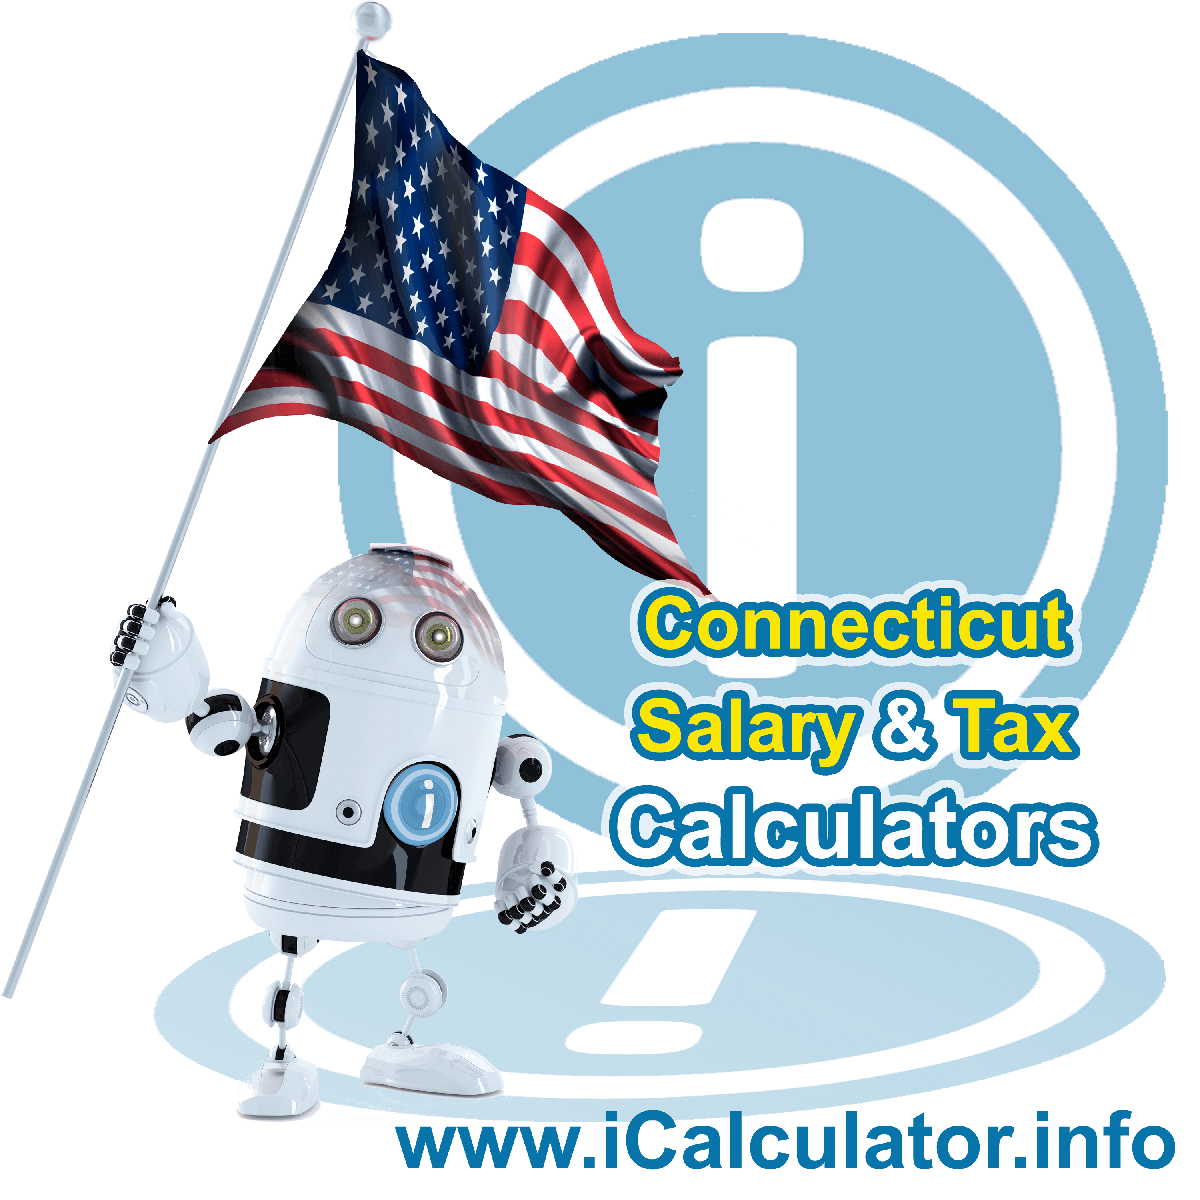 Connecticut Salary Calculator 2021 | iCalculator | The Connecticut Salary Calculator allows you to quickly calculate your salary after tax including Connecticut State Tax, Federal State Tax, Medicare Deductions, Social Security, Capital Gains and other income tax and salary deductions complete with supporting Connecticut state tax tables